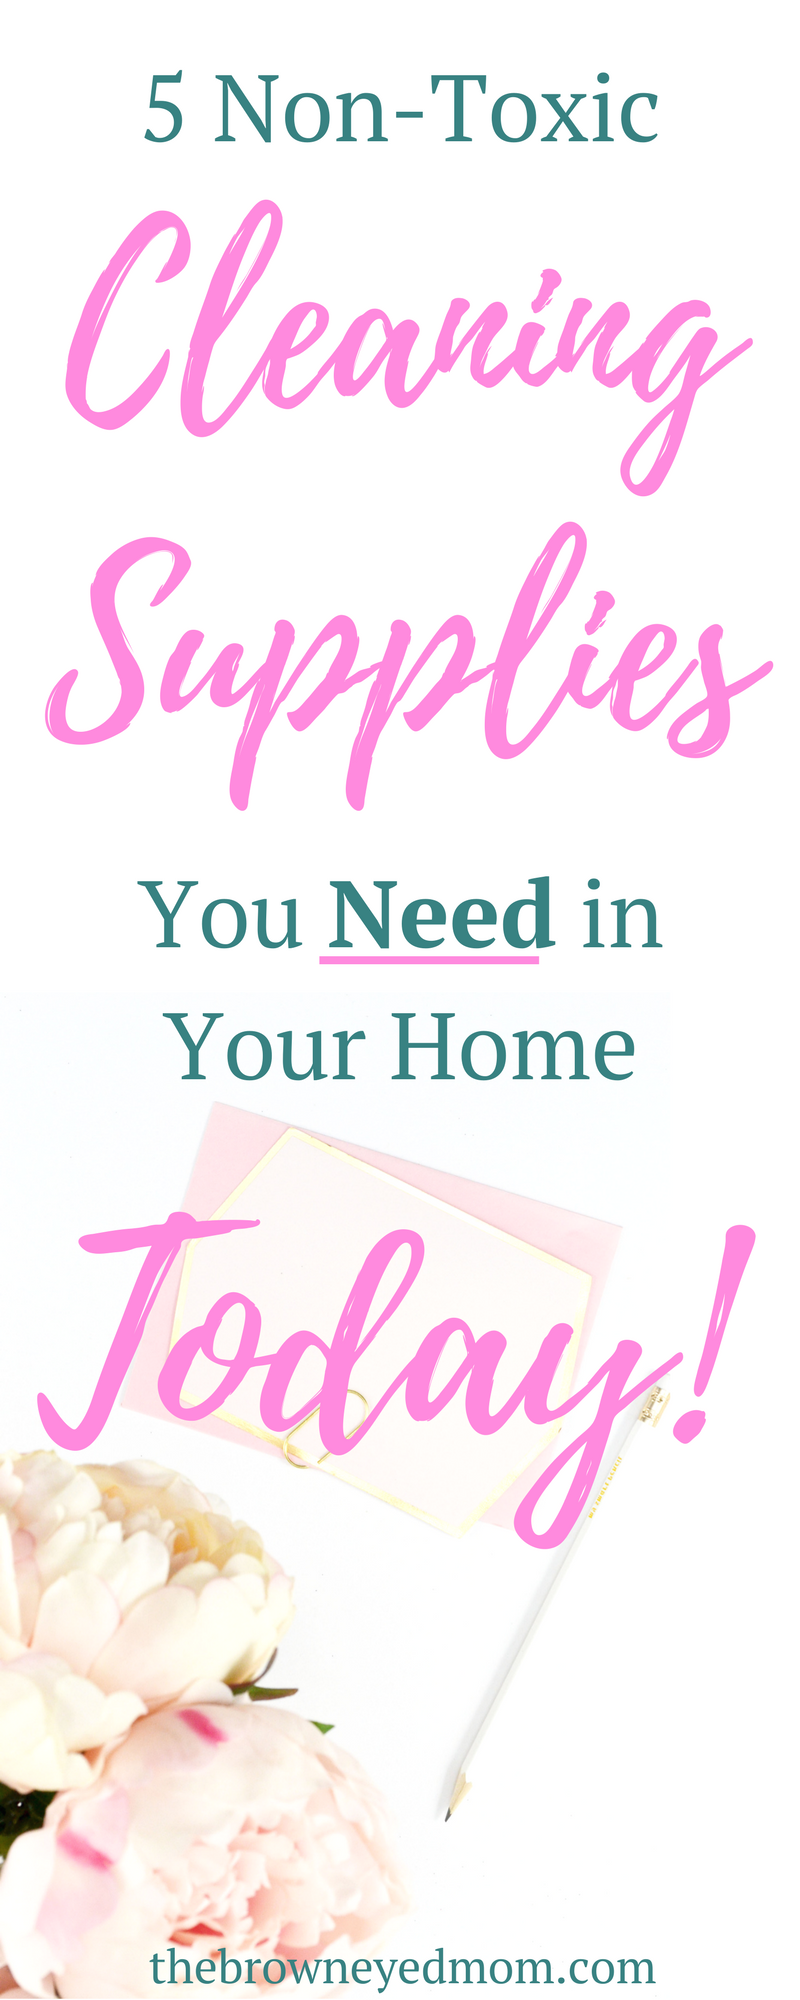 My 5 Favorite Non-Toxic Cleaning Supplies #Norwex #E-Cloth #PlantTherapy